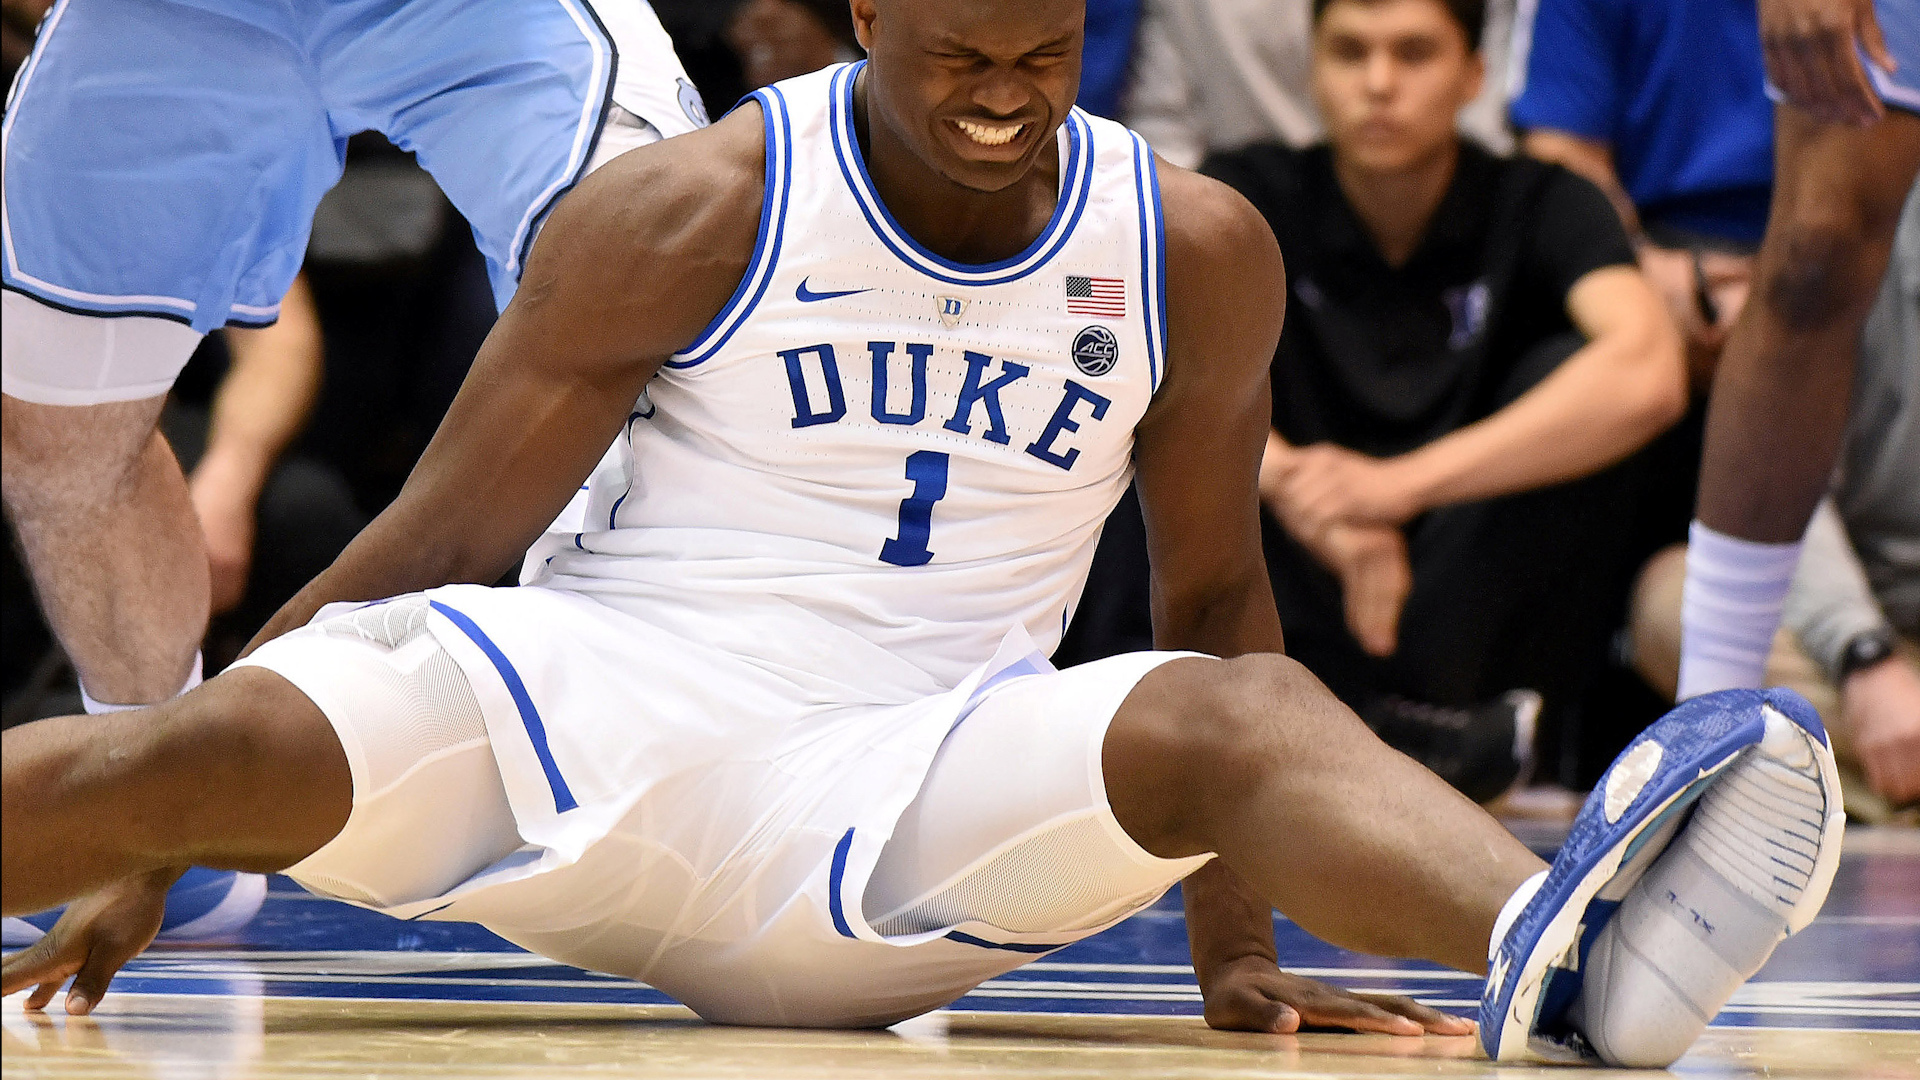 After Zion Williamson's shoe fails, Nike stock takes minor fall